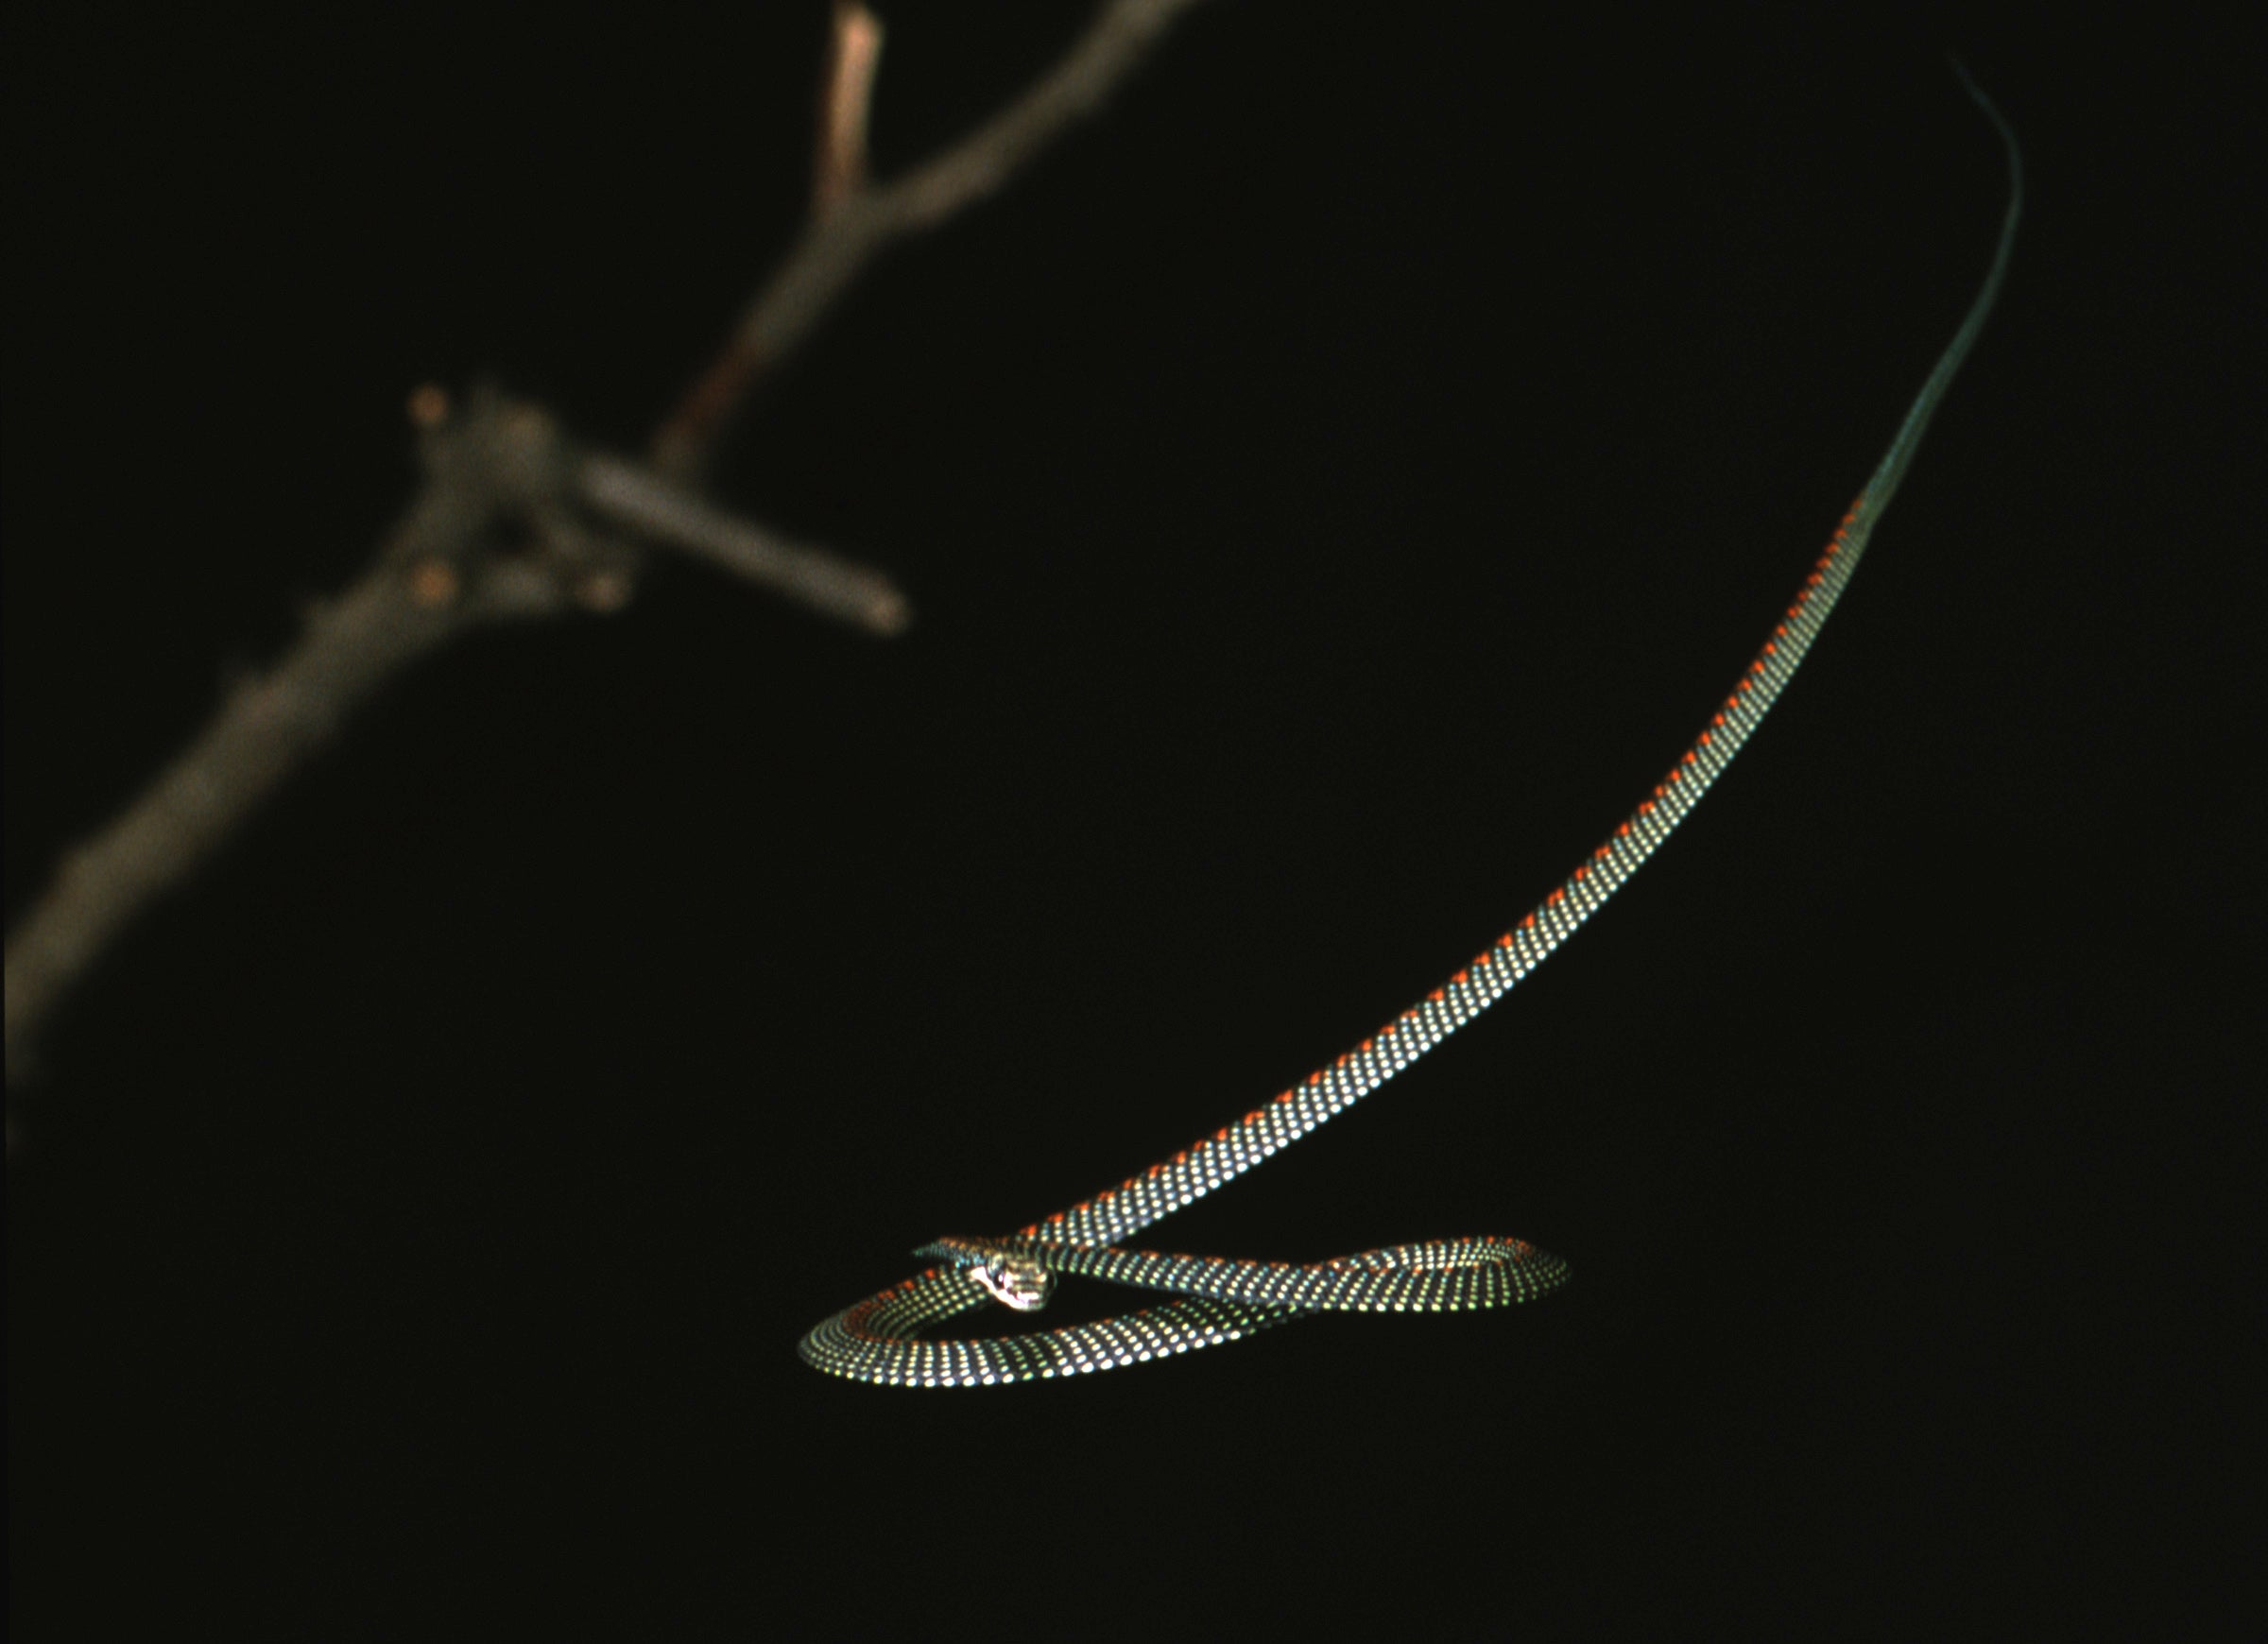 Watch Flying Snakes: They Don't Need A Plane